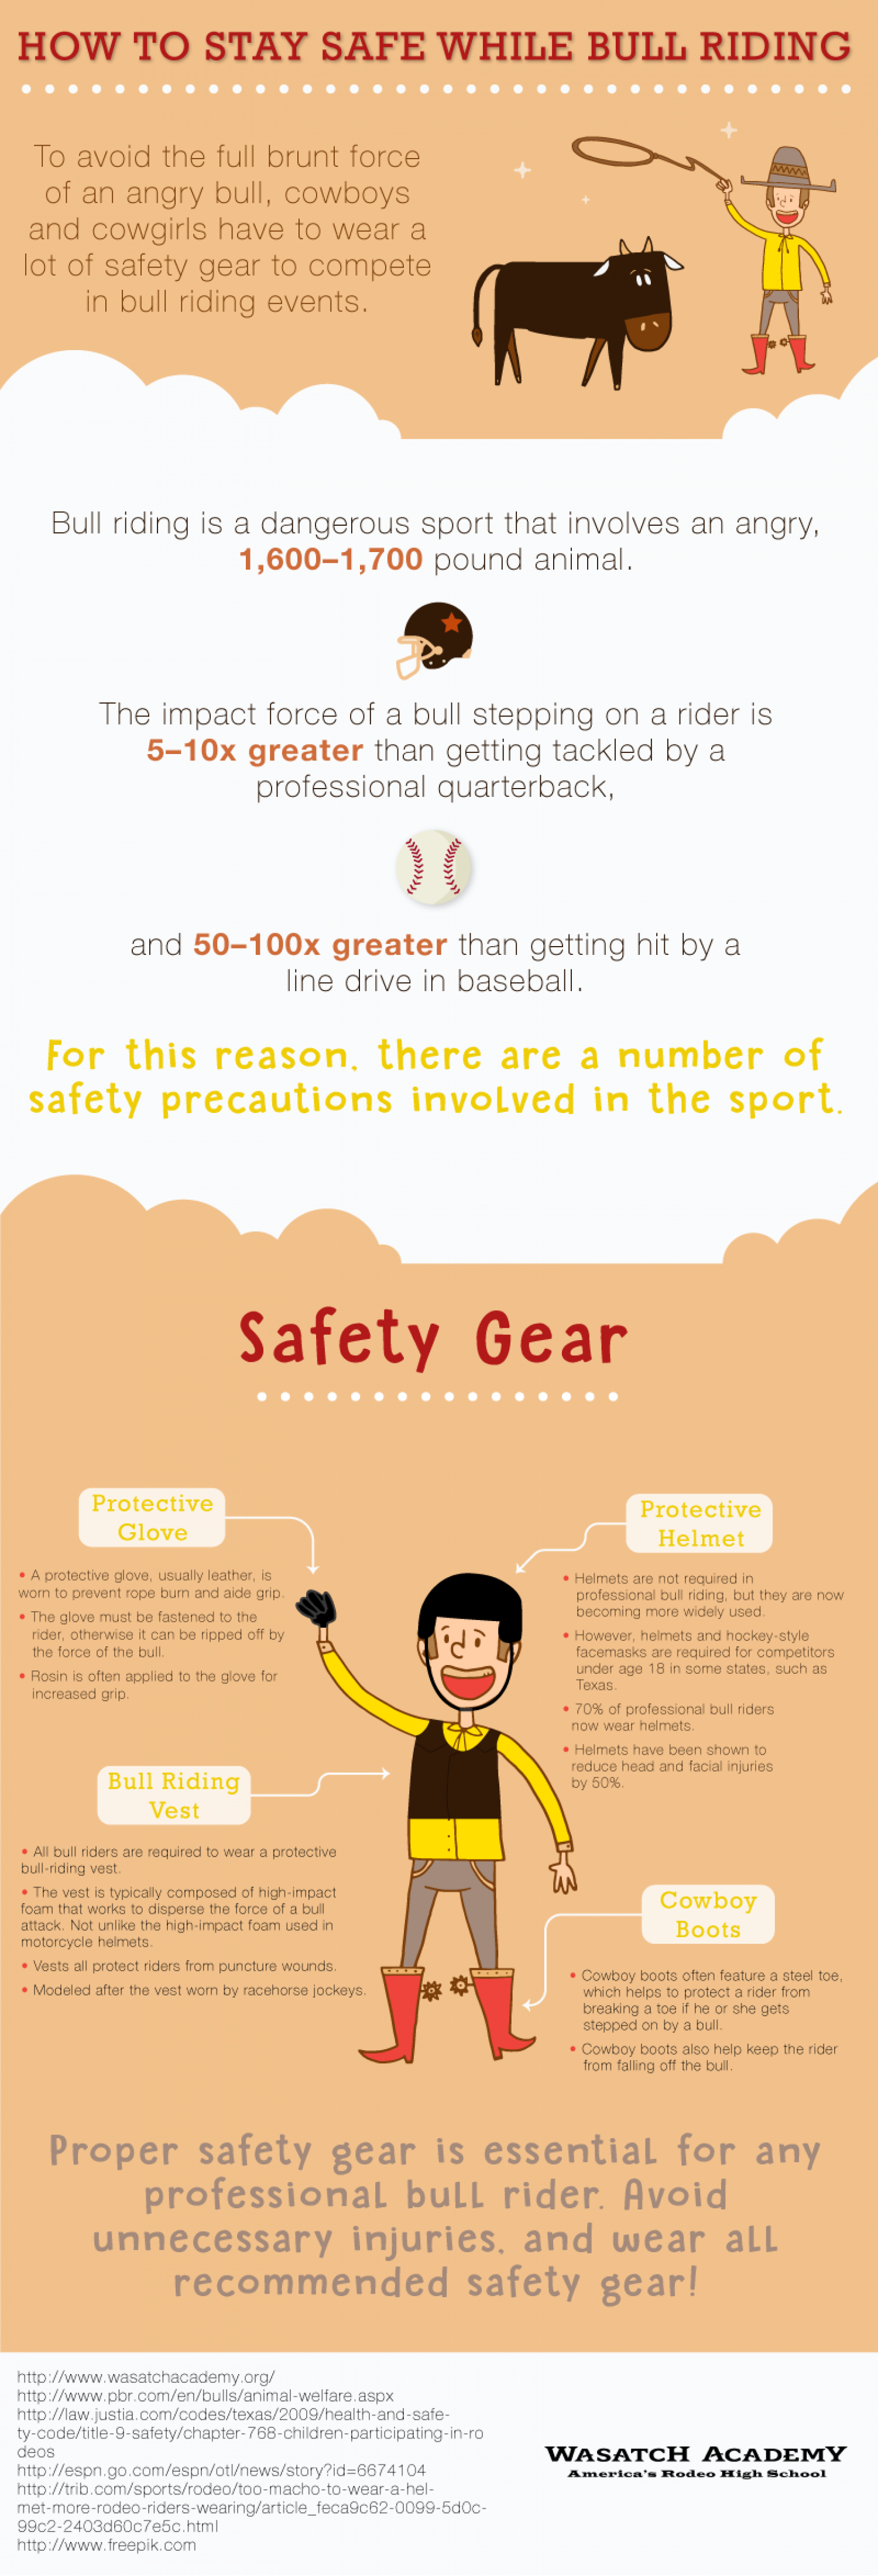 How to Stay Safe While Bull Riding Infographic